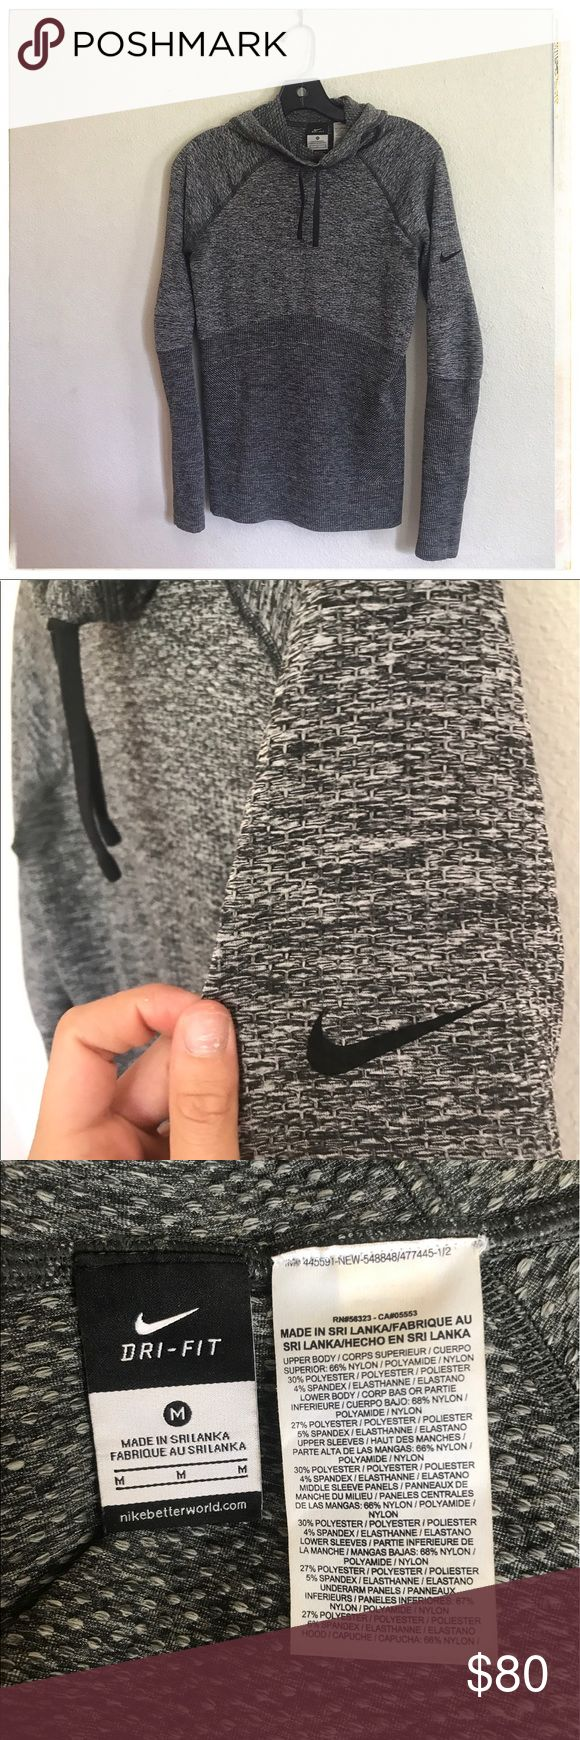 Nike technfit pullover hoodie NIKE pullover hoodie in TECHFIT material. Very flattering. Worn once. Too small for me. NOTE: the dark patches in the armpits are NOT stains, they are patches of darker material, its how Nike makes it more breathable. Nike Jackets & Coats